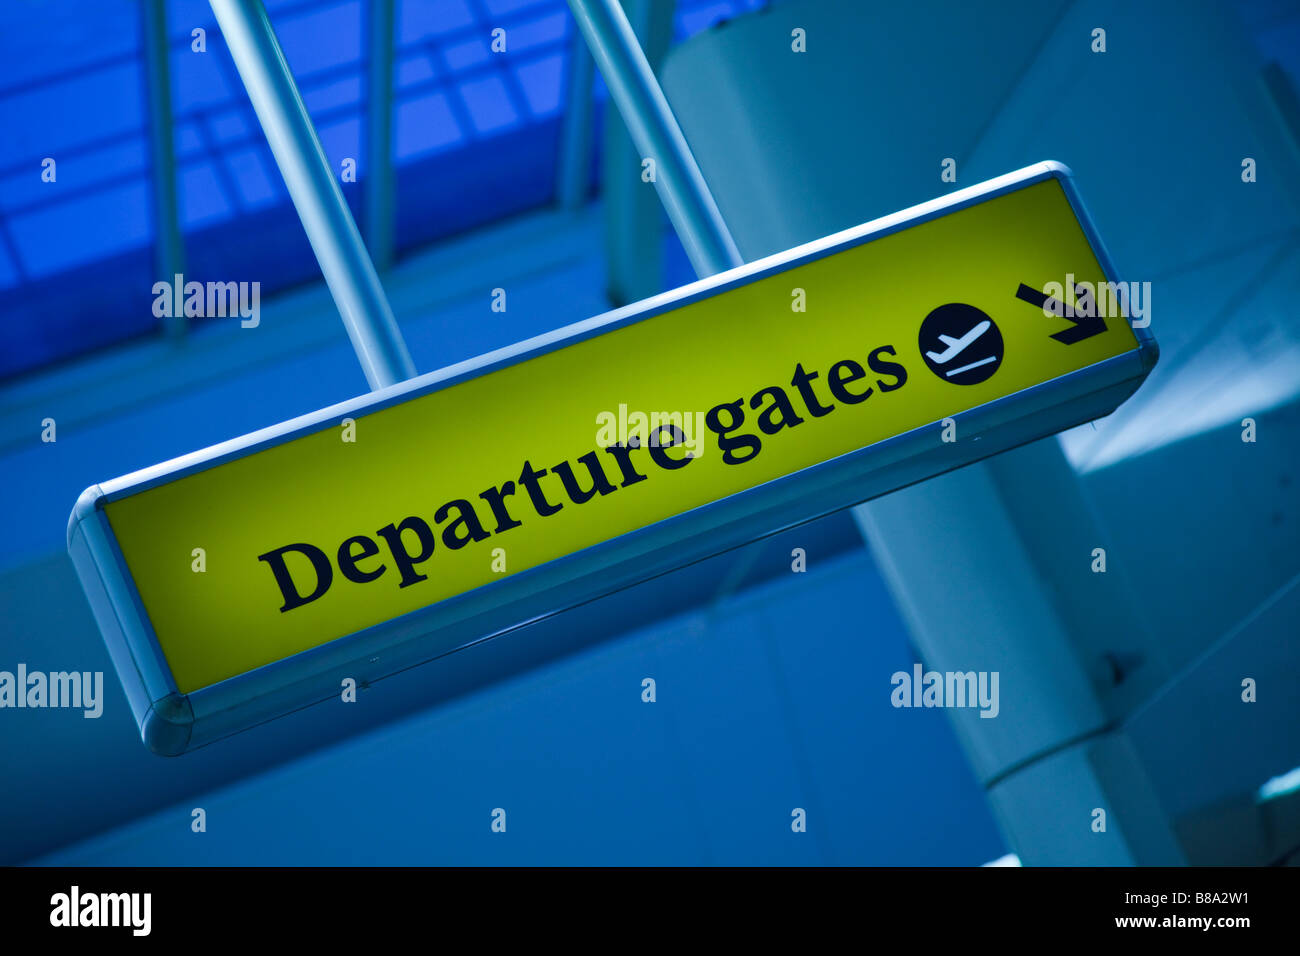 Departure Gates sign with arrow at Gatwick Airport, London - Stock Image